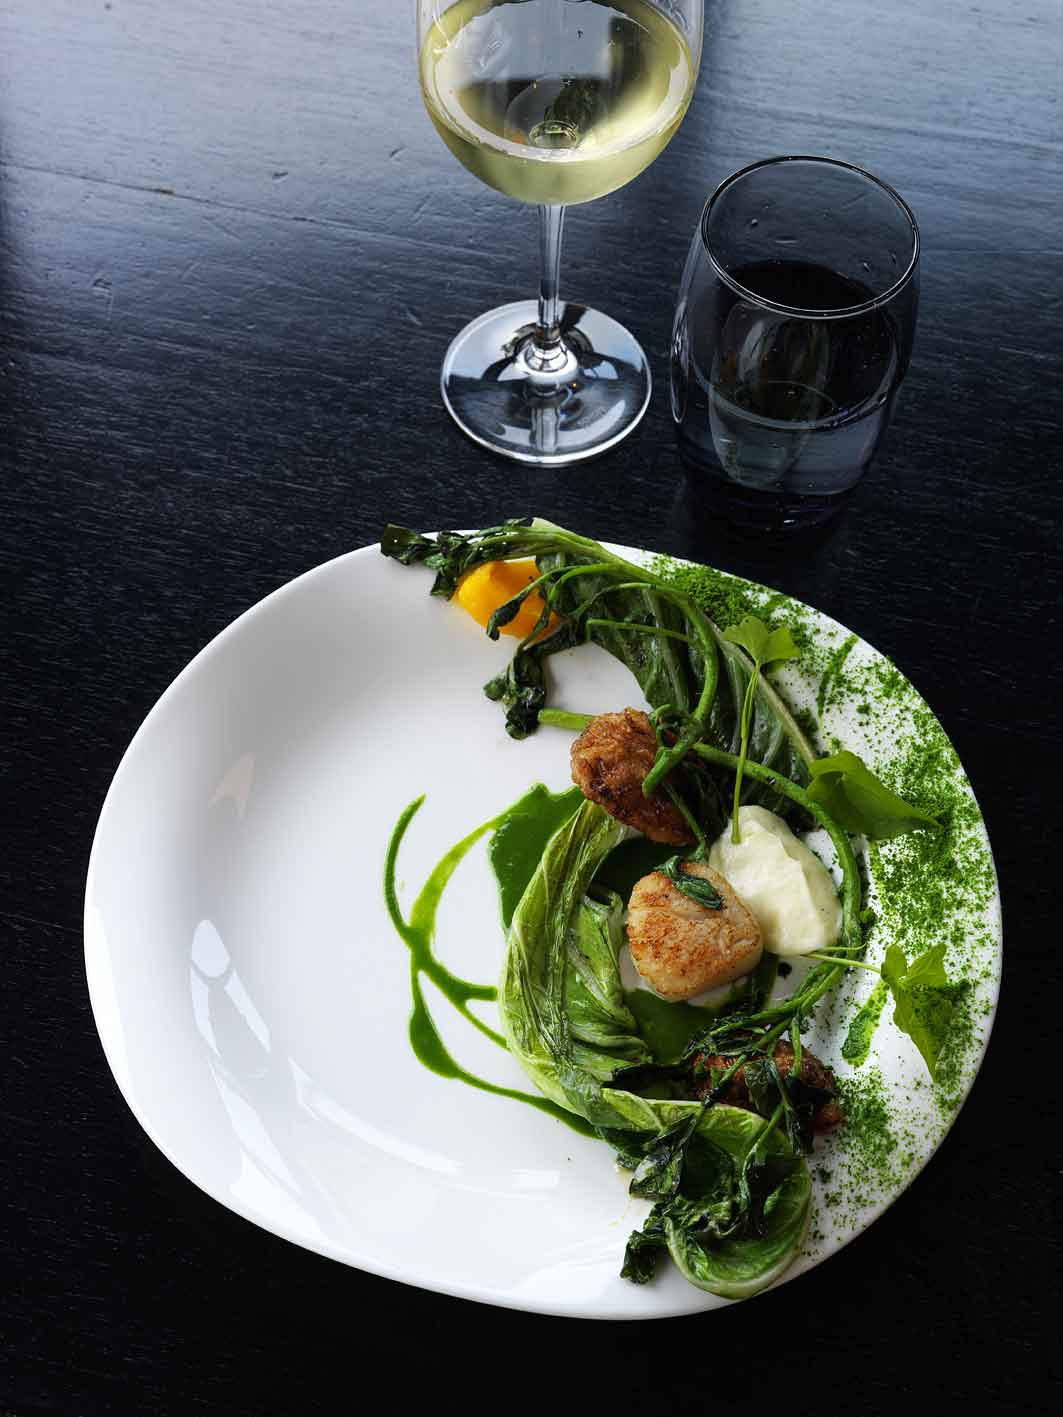 A seasonal offering of roast scallops and veal sweetbreads at Gastro Park.